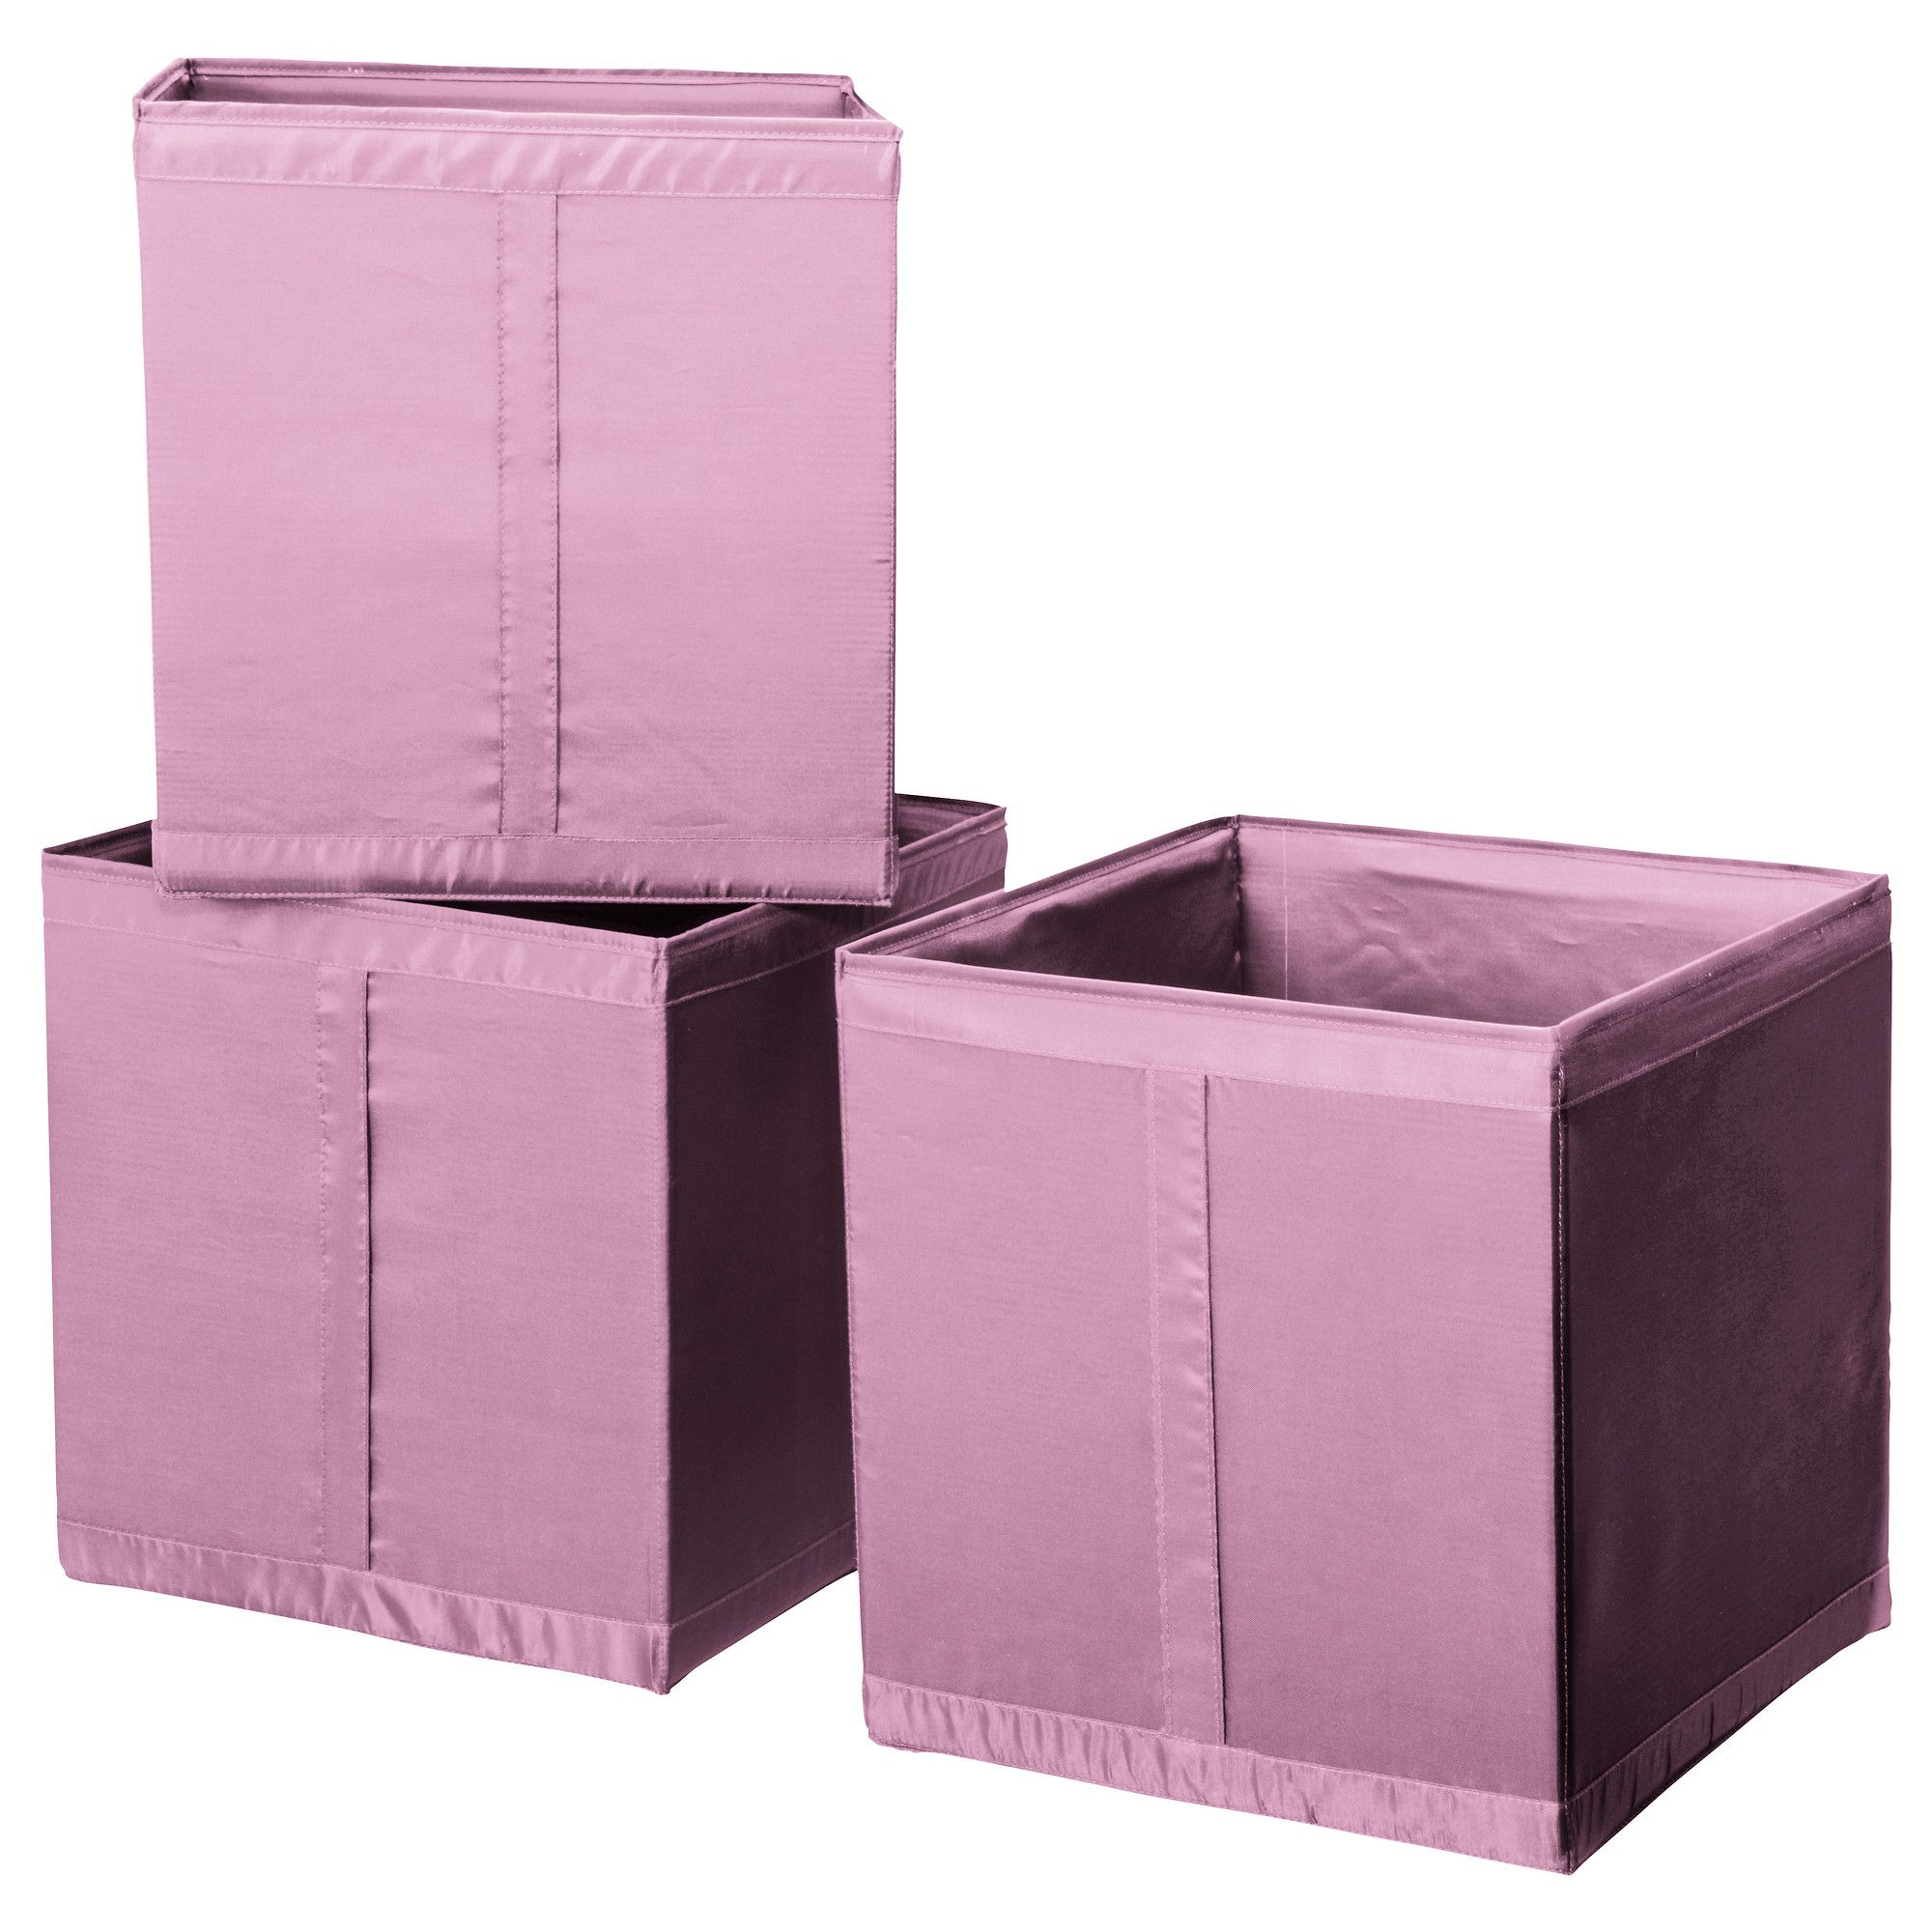 skubb box pink ikea storage for clothes shoes to buy or diy